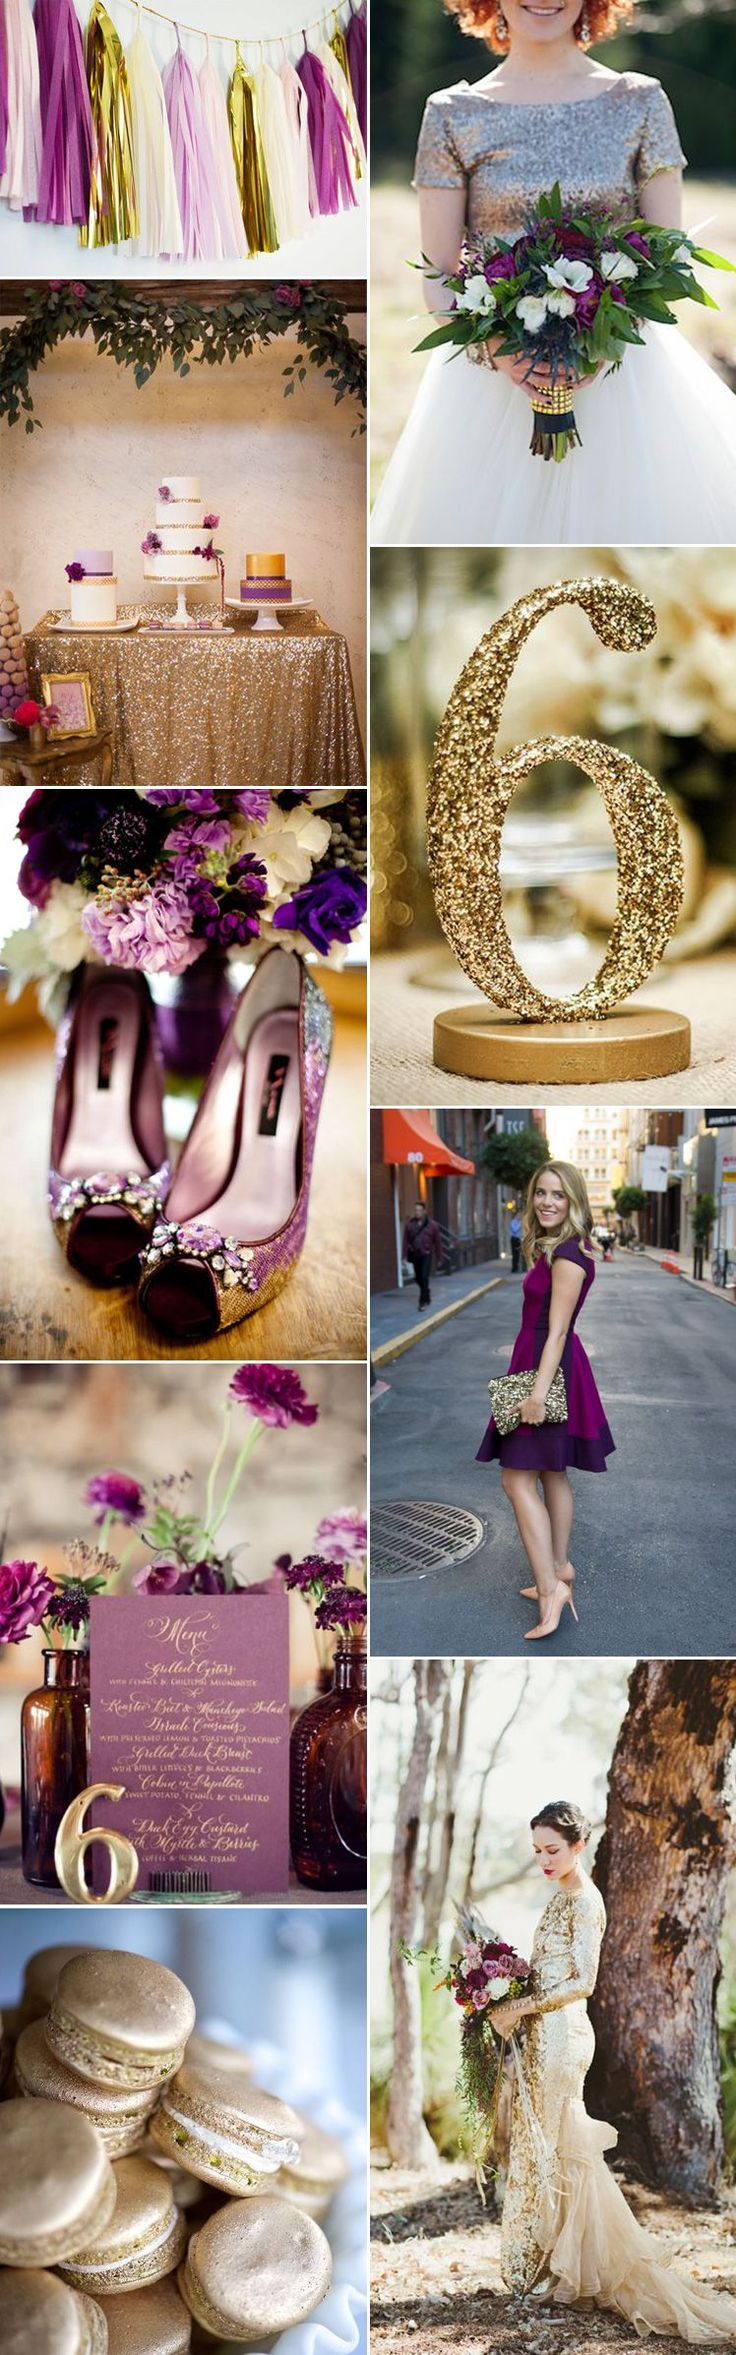 Rich, opulent and a dream color combination for autumn or winter. Here are some gorgeous wedding ideas incorporating plum and gold